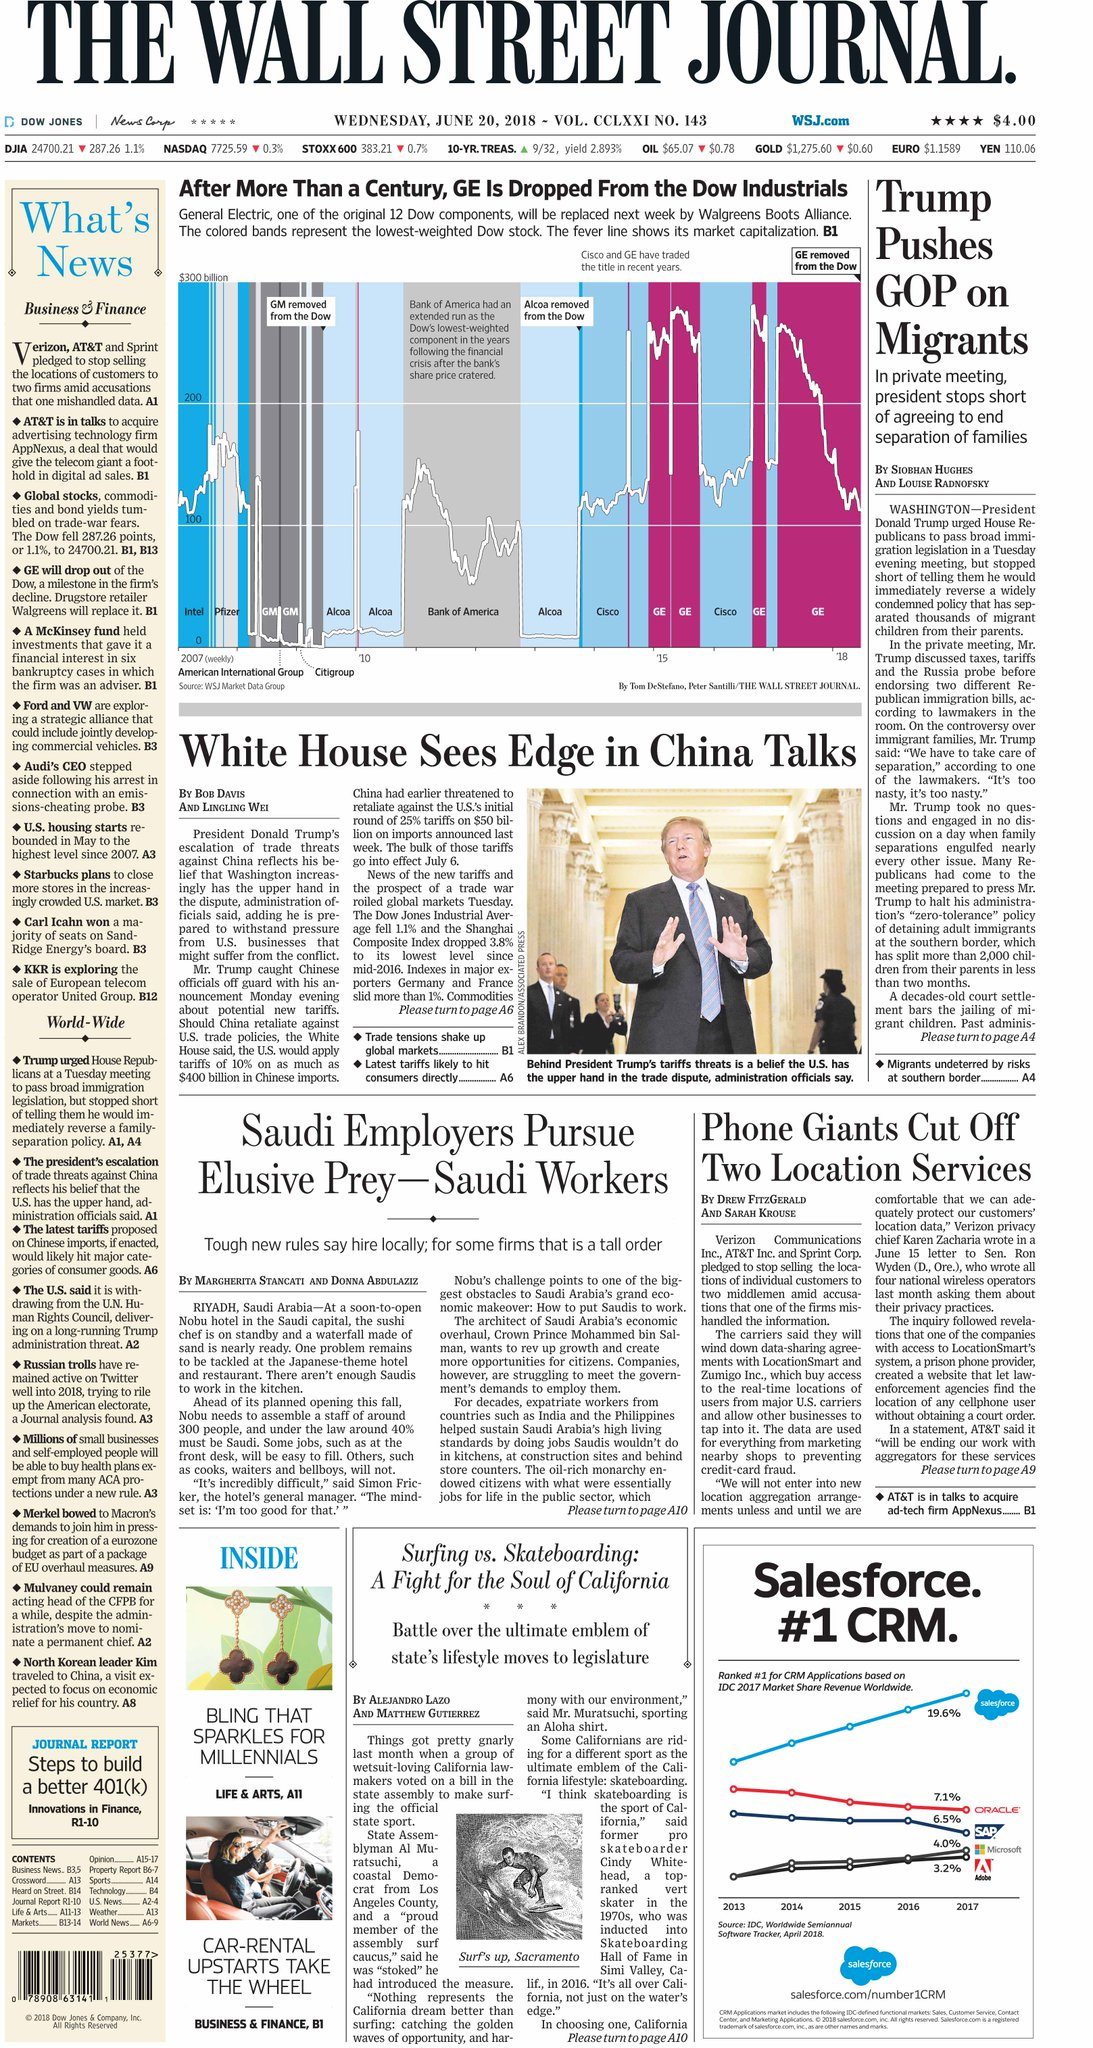 Take an early look at the front page of The Wall Street Journal https://t.co/5xQPDPcm8q https://t.co/p2duiCPvGR